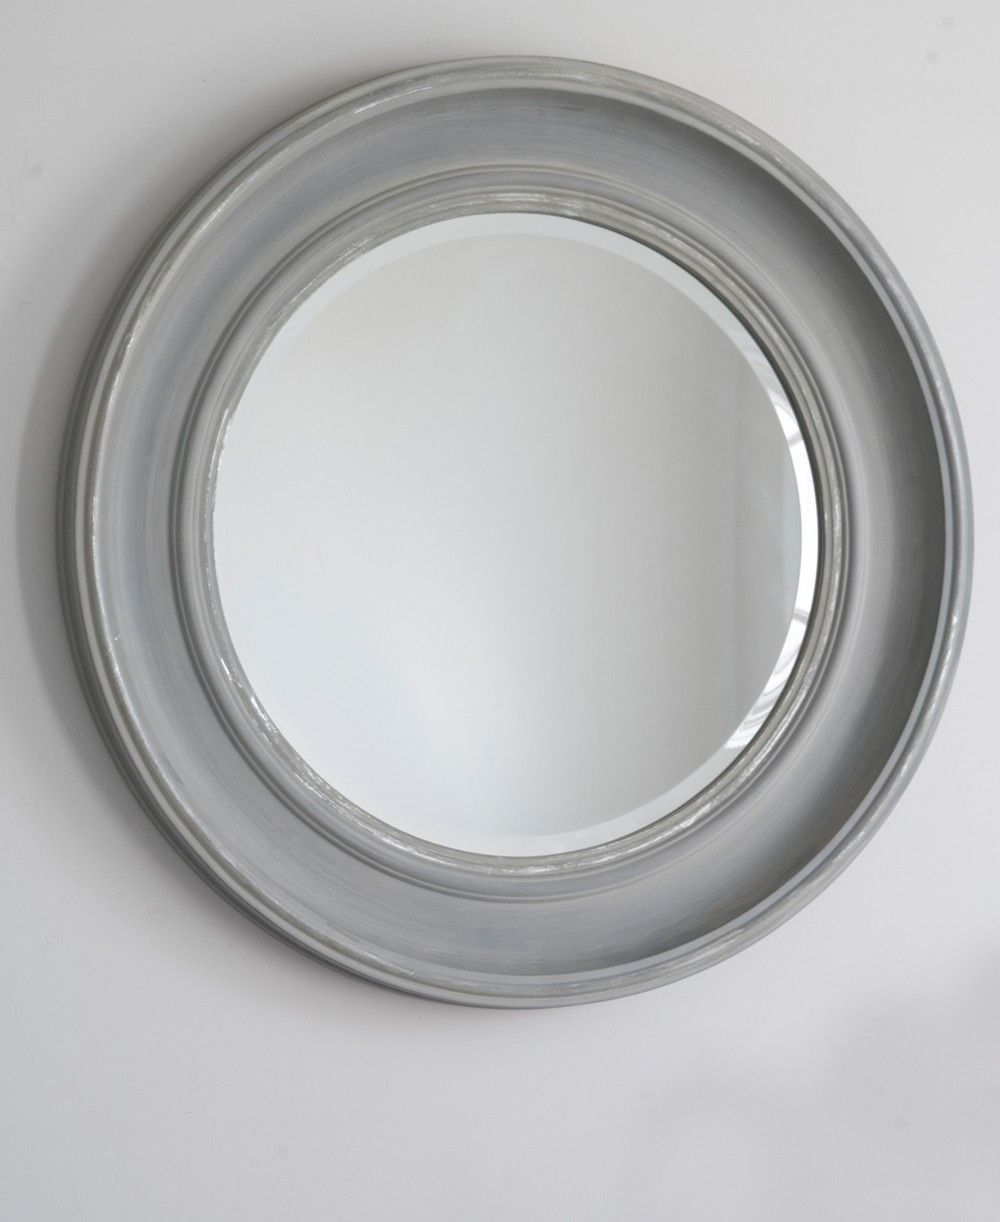 An easy round mirror ideal for a living room hallway or bathroom